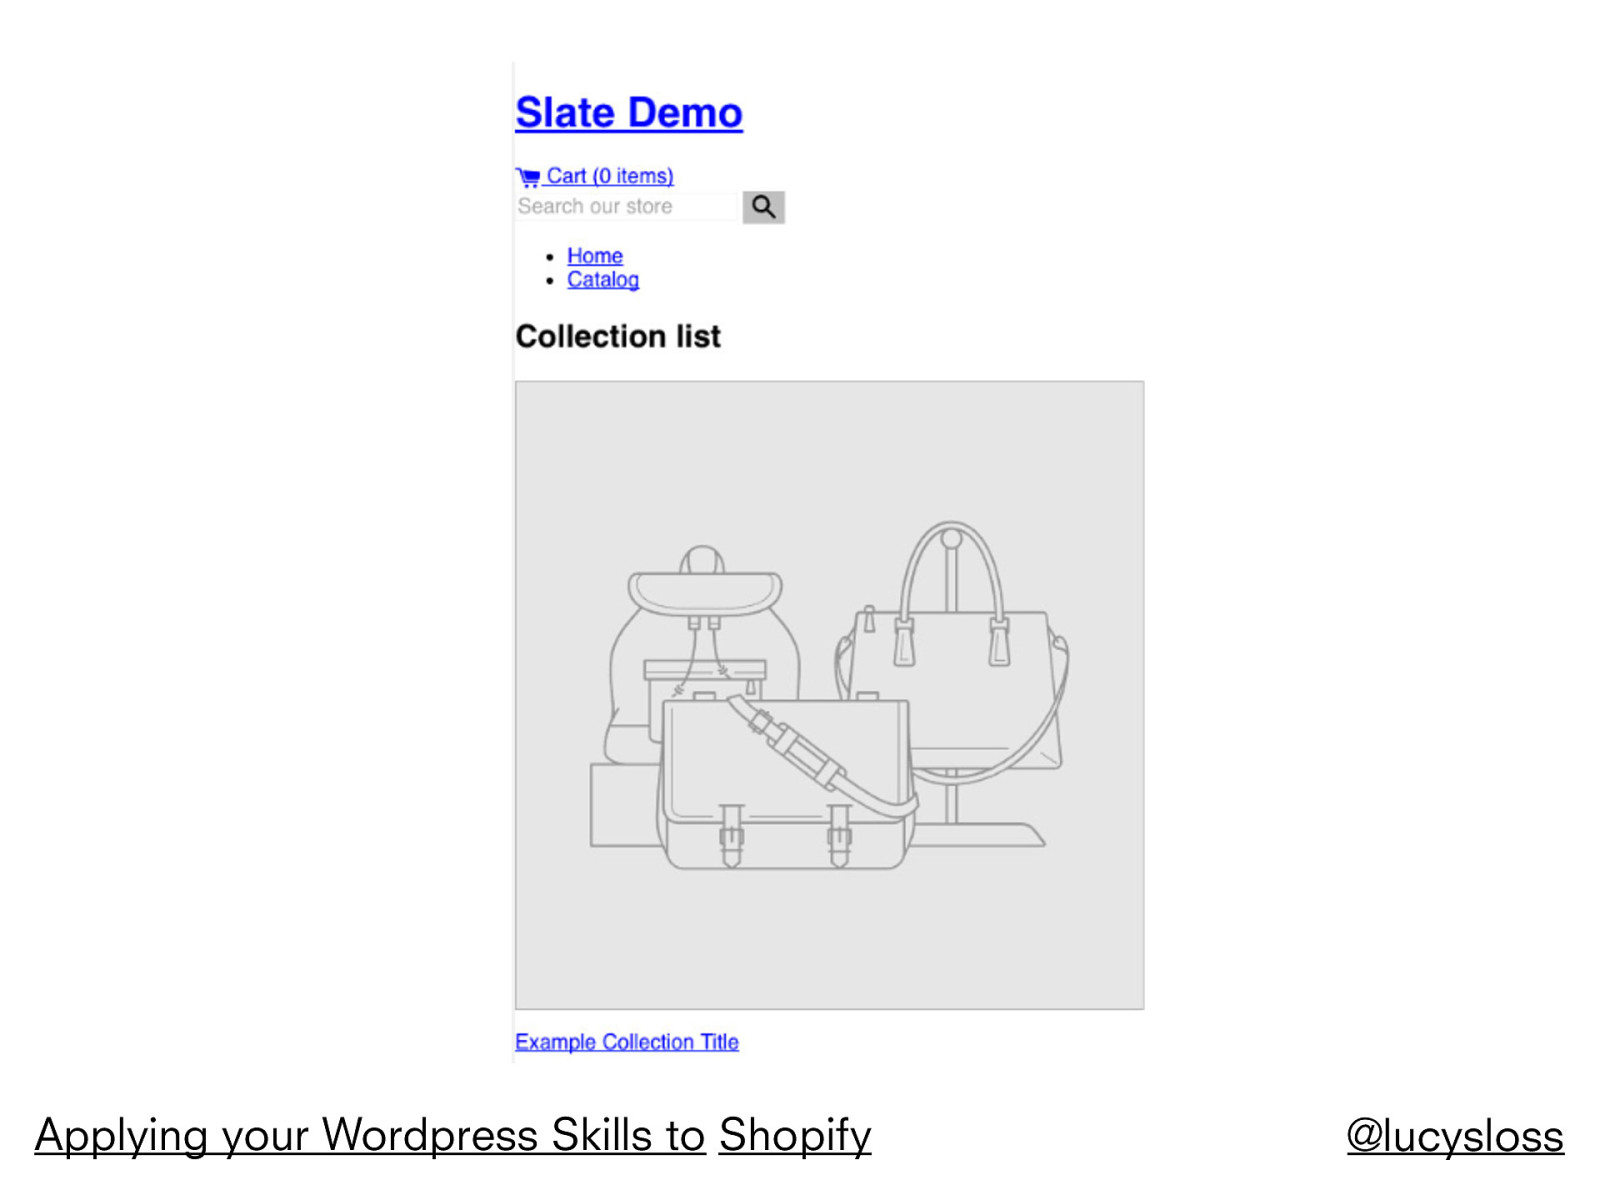 Applying your Wordpress skills to Shopify